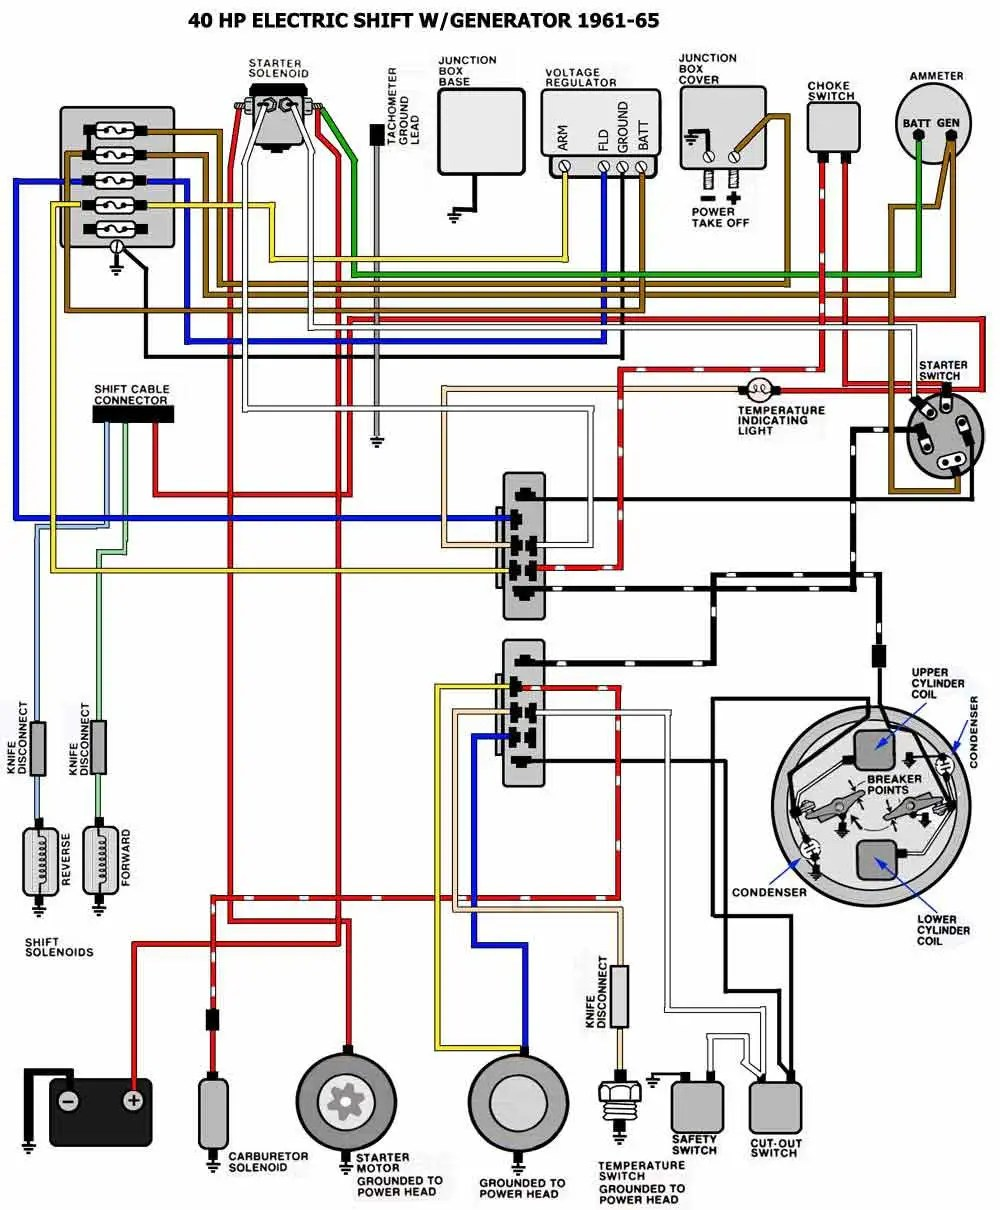 medium resolution of evinrude johnson outboard wiring diagrams mastertech marine 40 hp electric shift